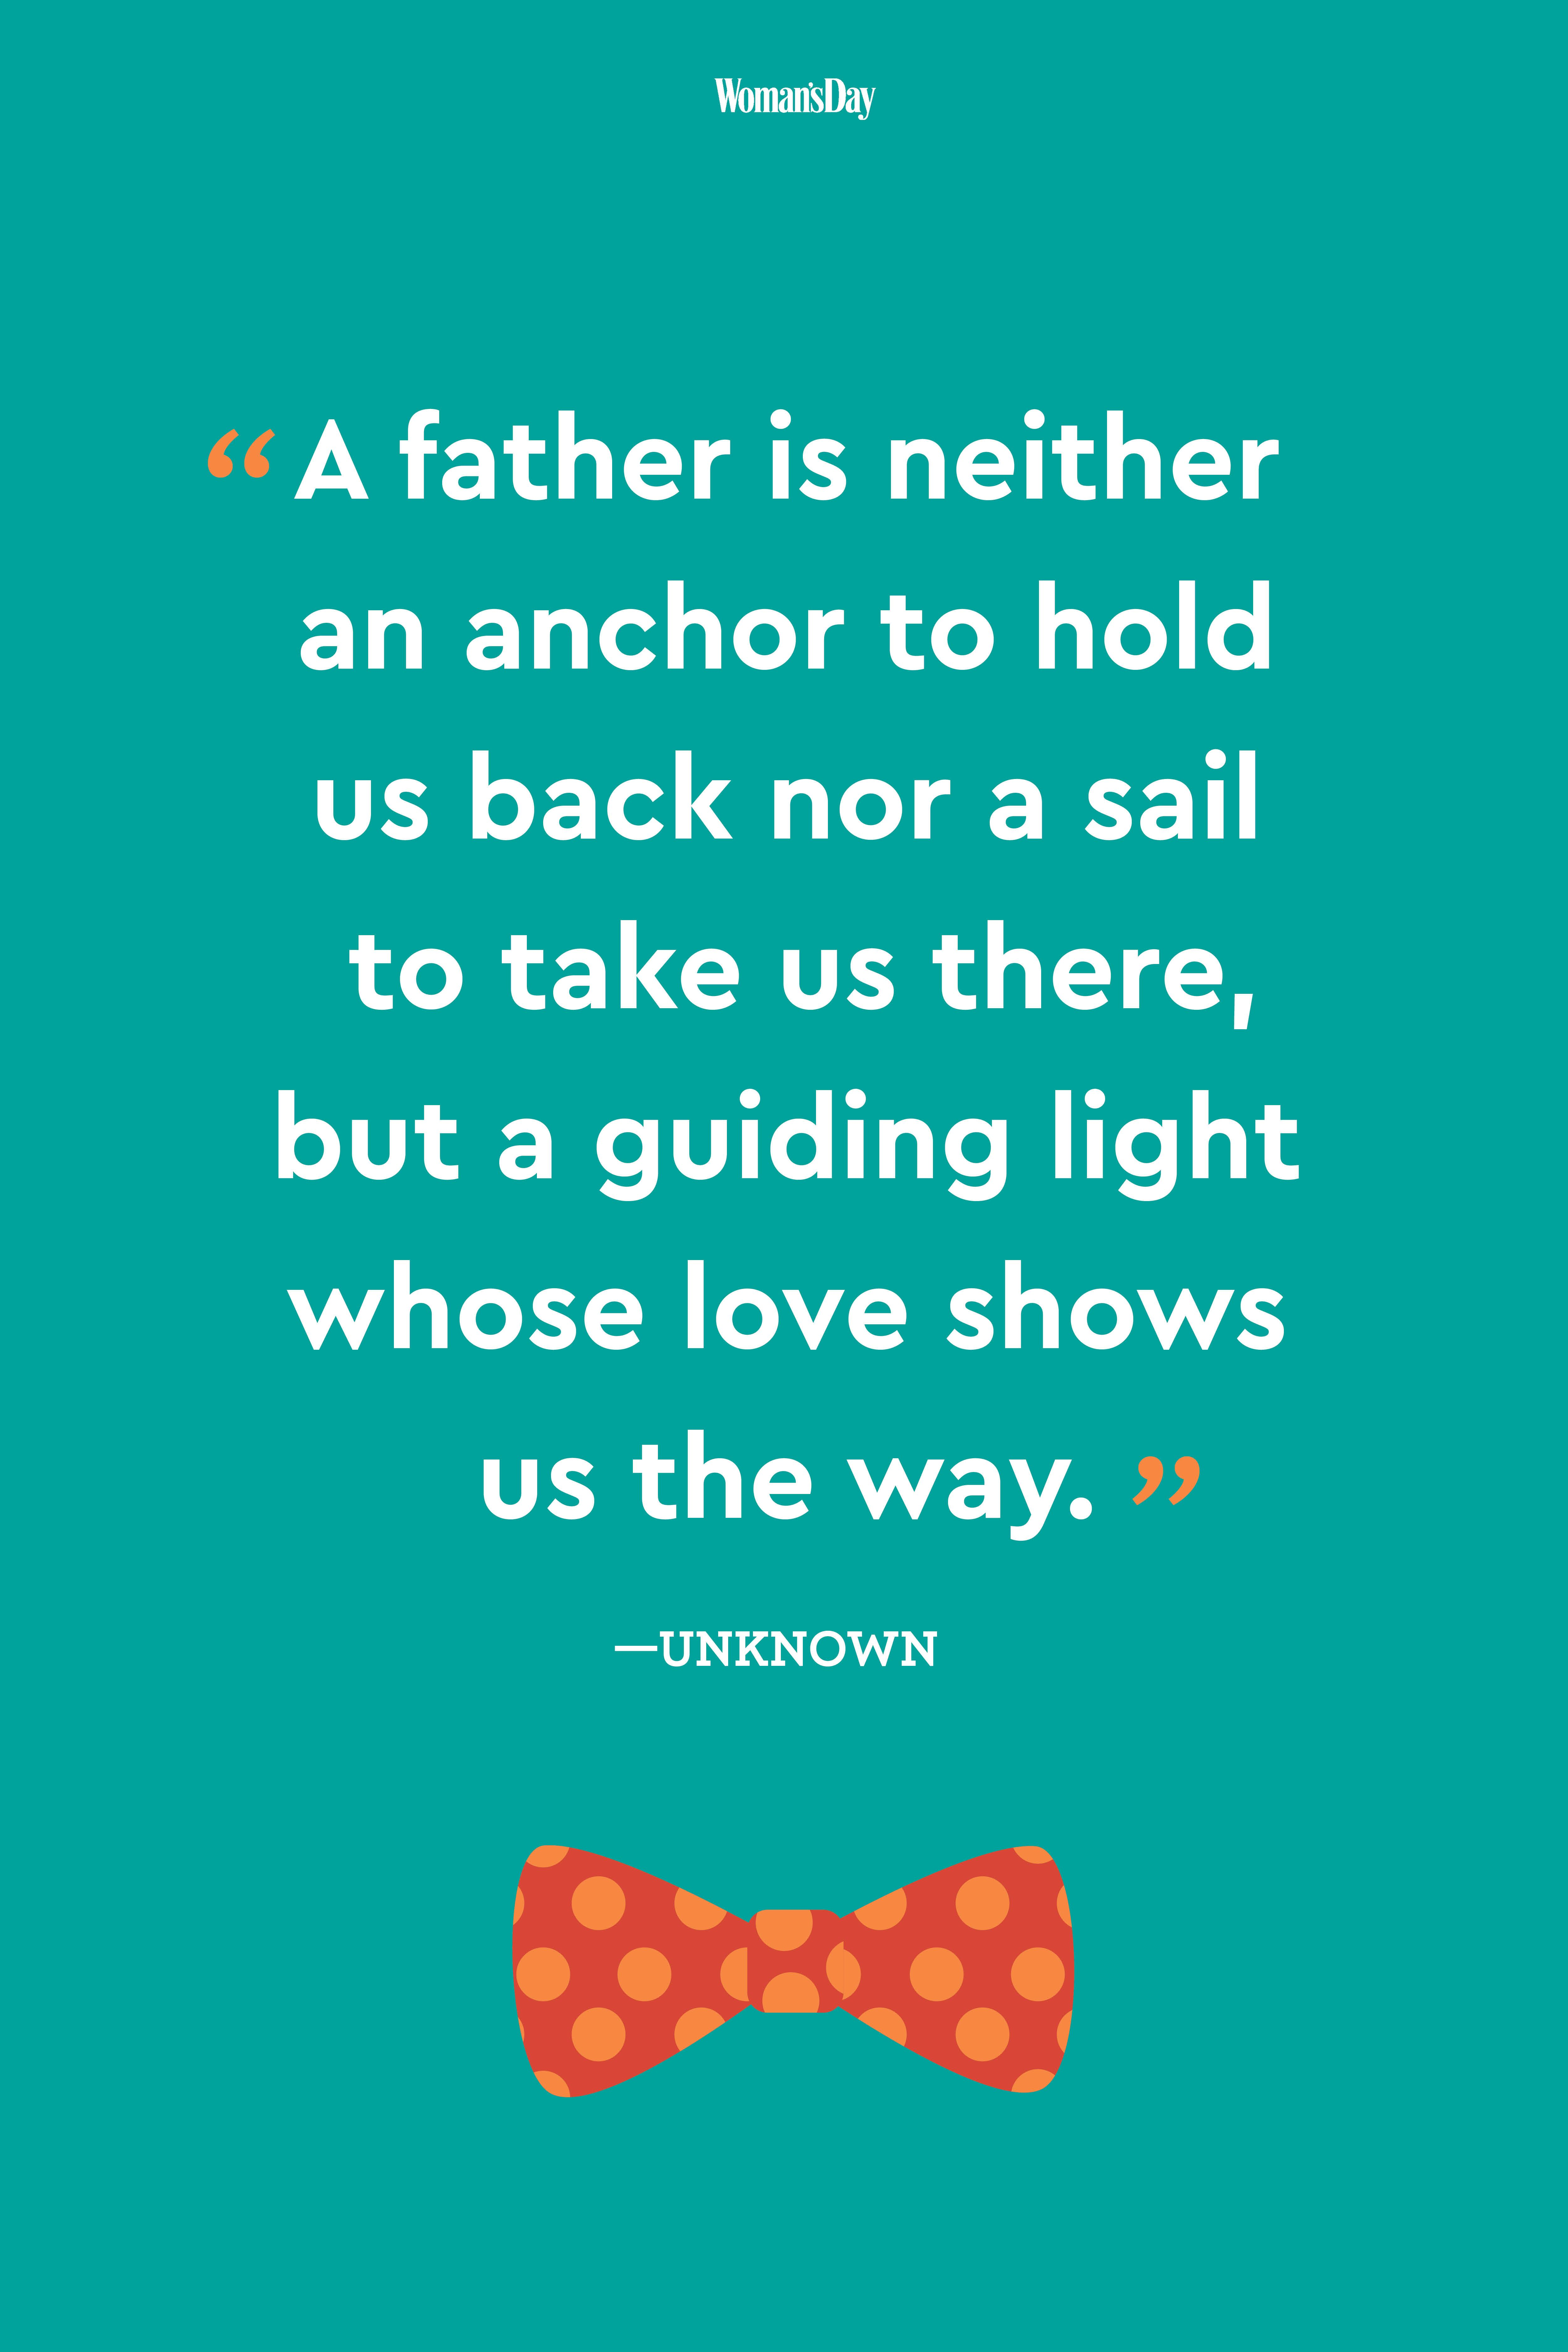 Image of: Messages 24 Fathers Day Quotes To Share With Dad Womans Day 24 Best Fathers Day Quotes Meaningful Fathers Day Sayings About Dads